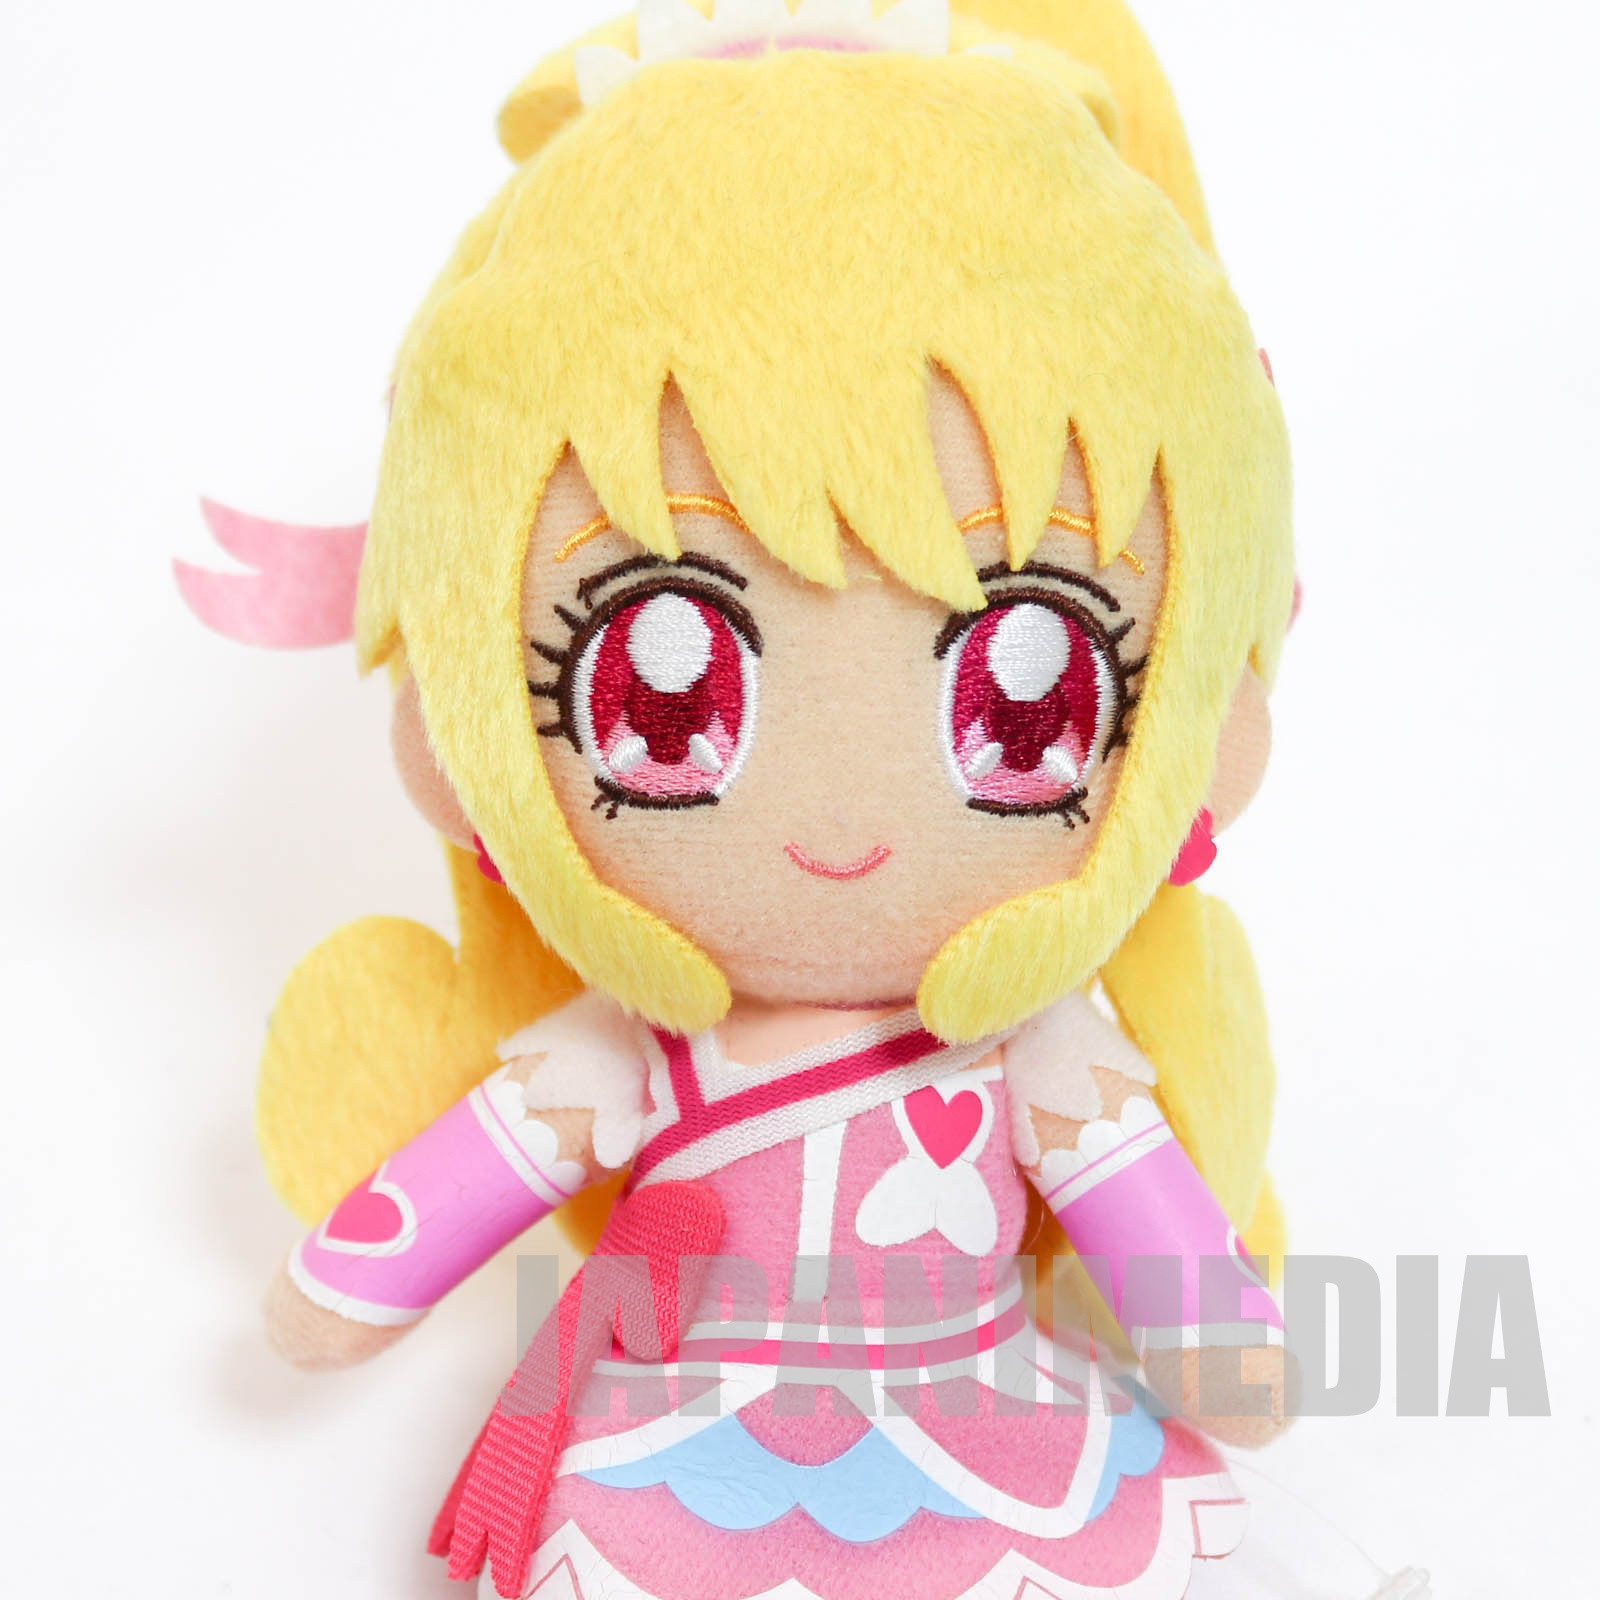 Doki Doki! PreCure Cure Heart Plush doll JAPAN ANIME